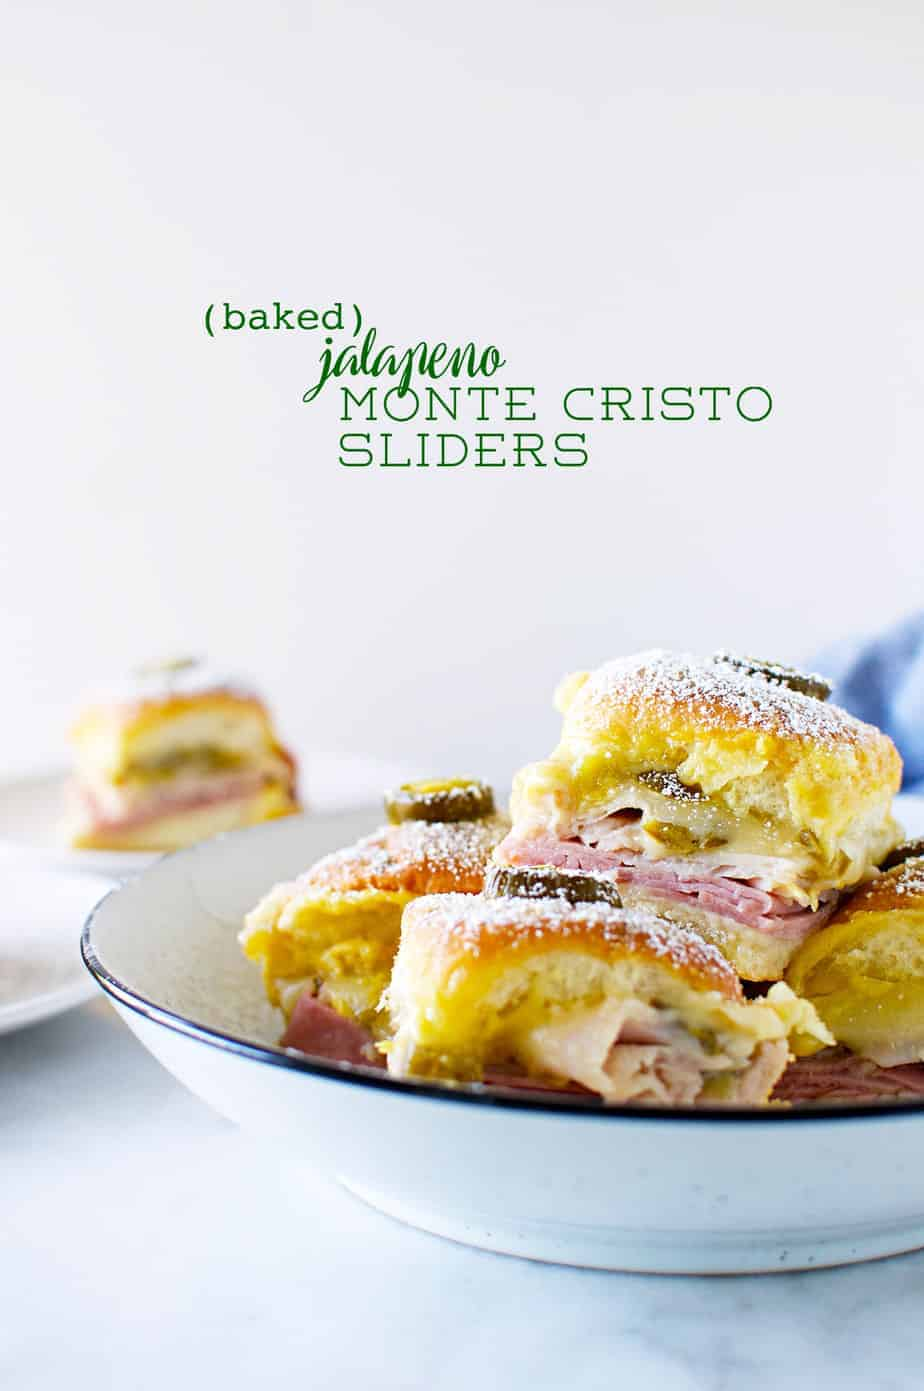 Baked Jalapeño Monte Cristo Sliders recipe (via thepigandquill.com) #turkeysandwich #thanksgivingleftovers #holidayrecipe #spicy